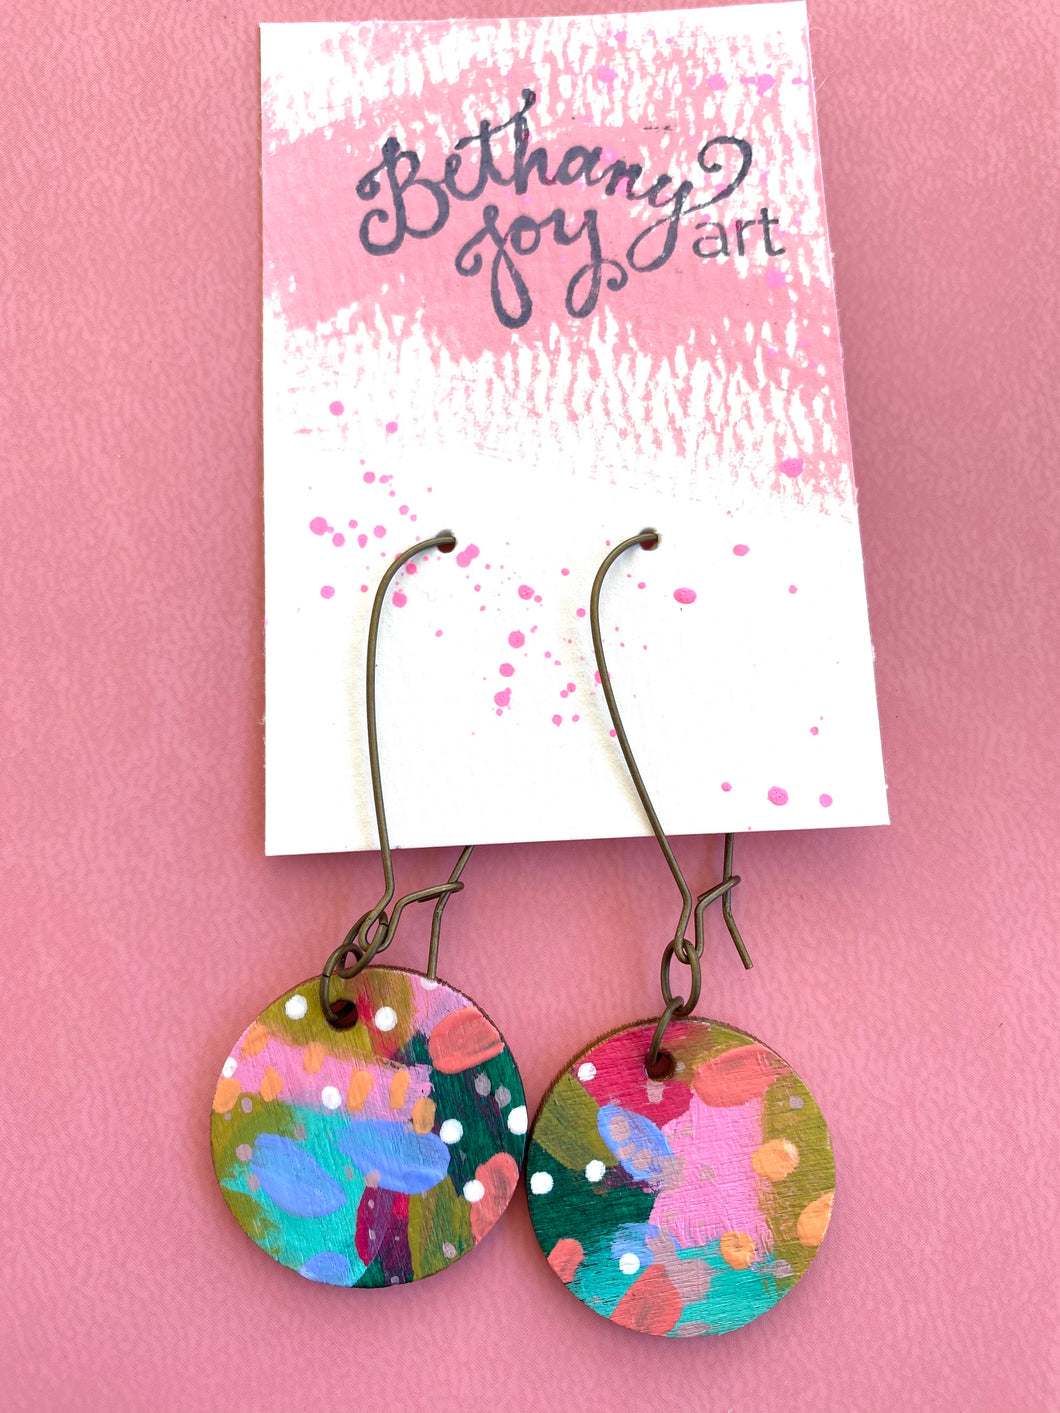 Colorful, Hand Painted Earrings 17 - Bethany Joy Art